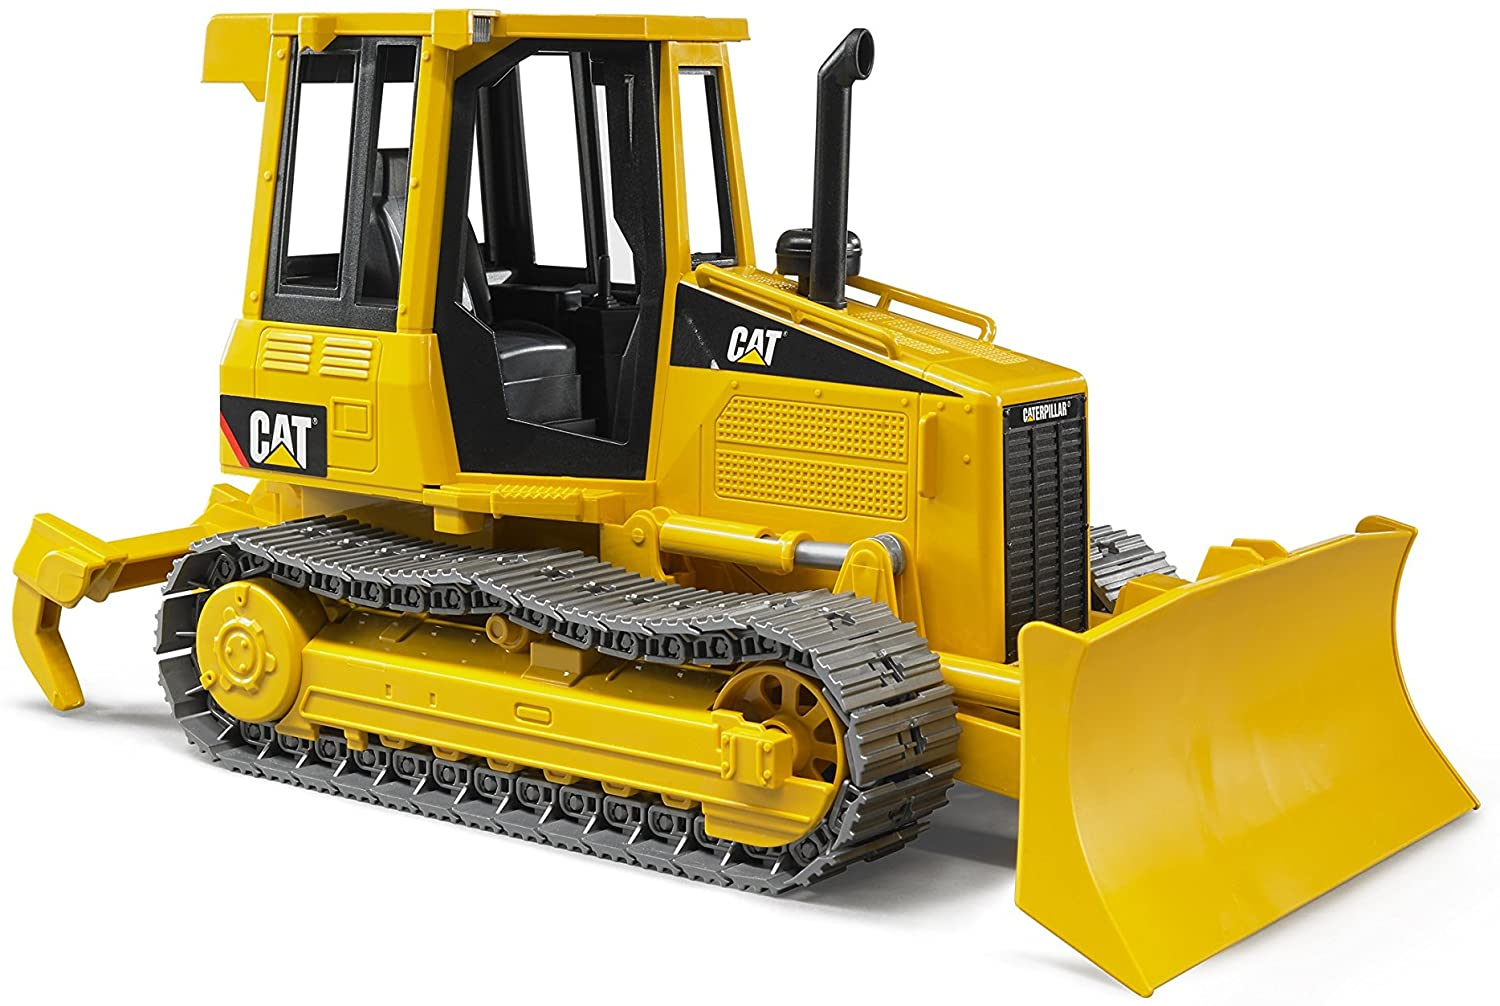 Pro - CAT Track Type Tractor